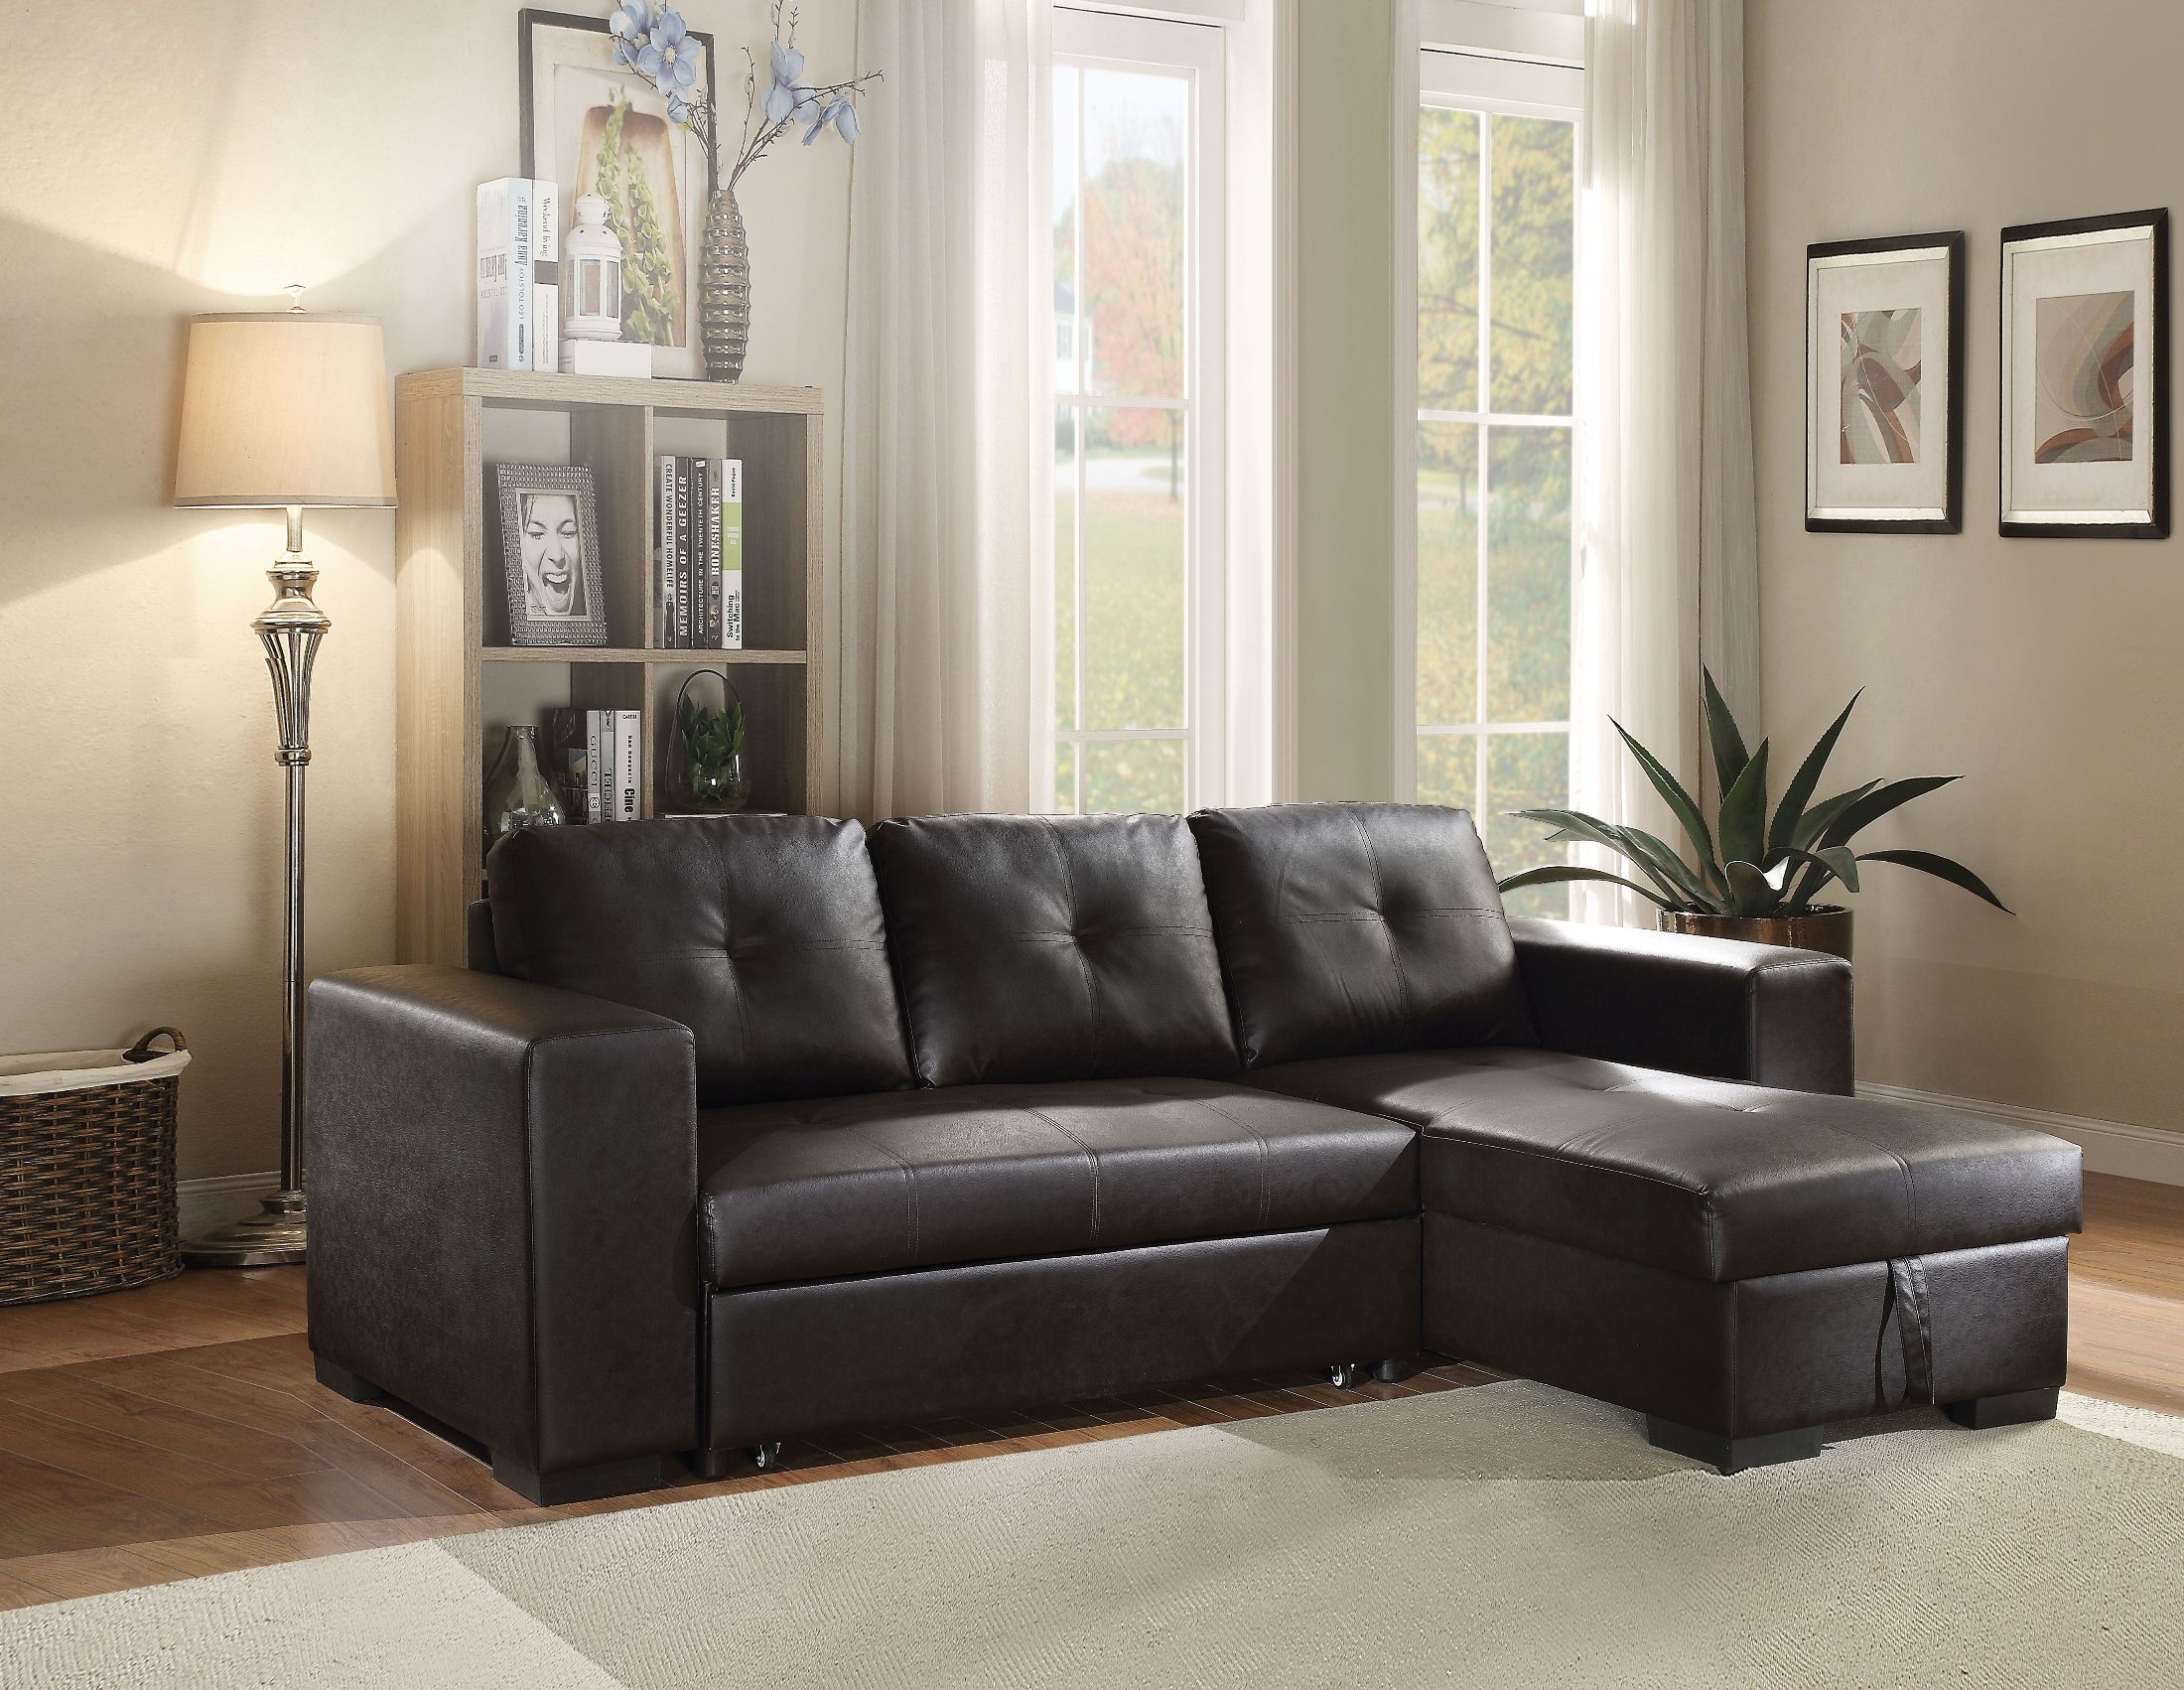 Picture of: Lloyd Black Sectional Sleeper Sofa 1stopbedrooms